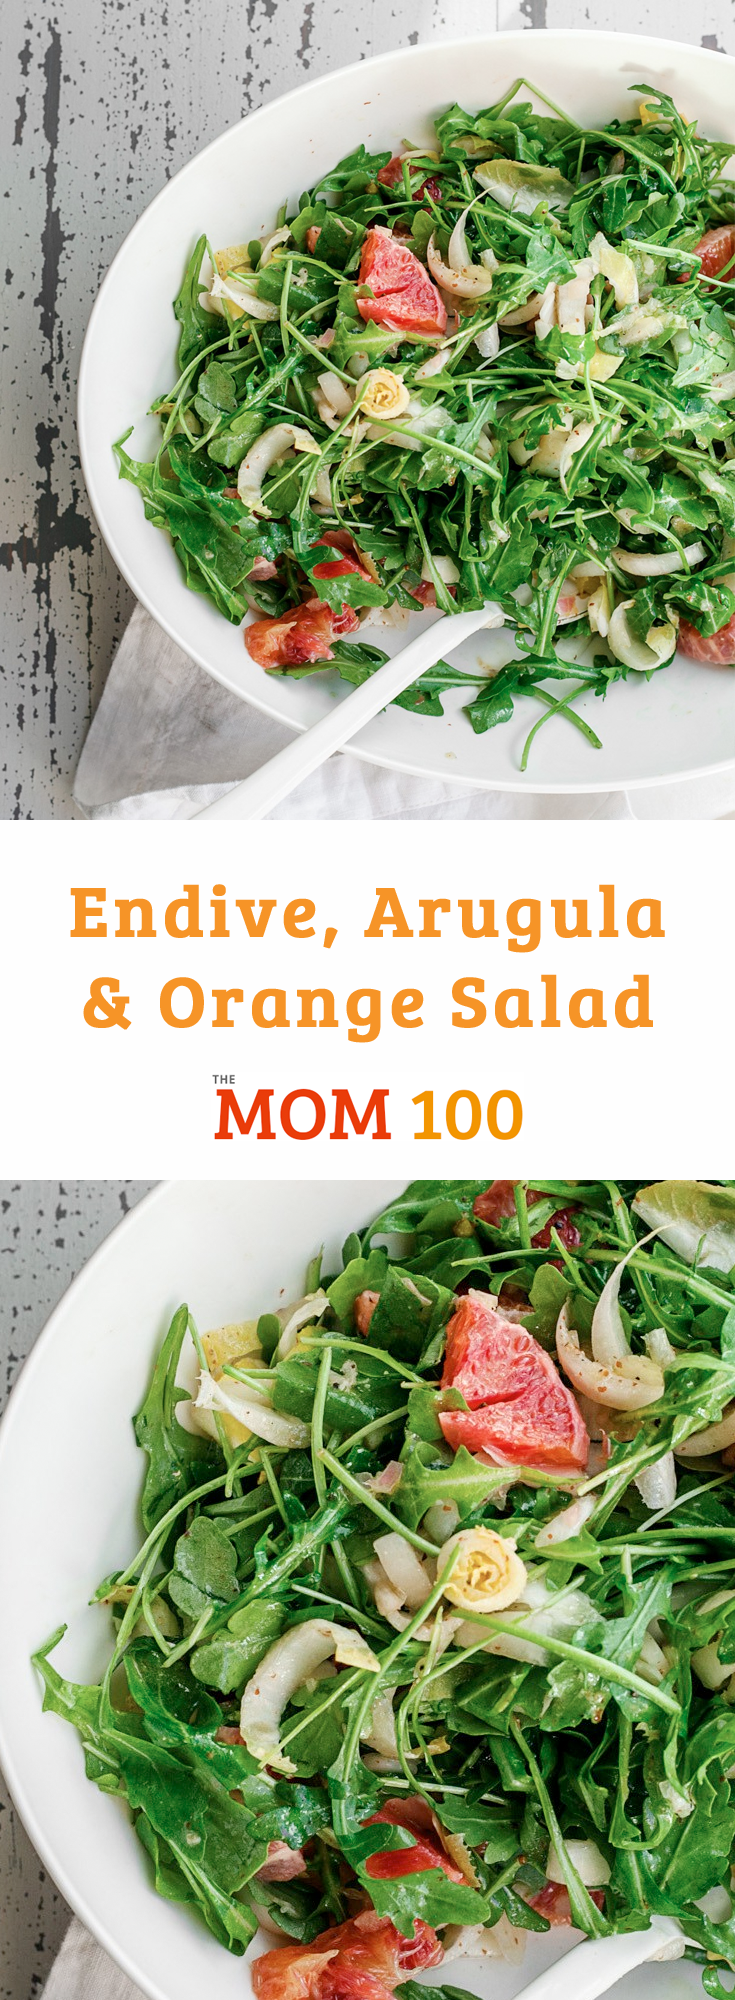 Endive, Arugula and Orange Salad: A bracing salad with a mix of greens, studded with pieces of juicy, beautiful orange. Especially great for winter.